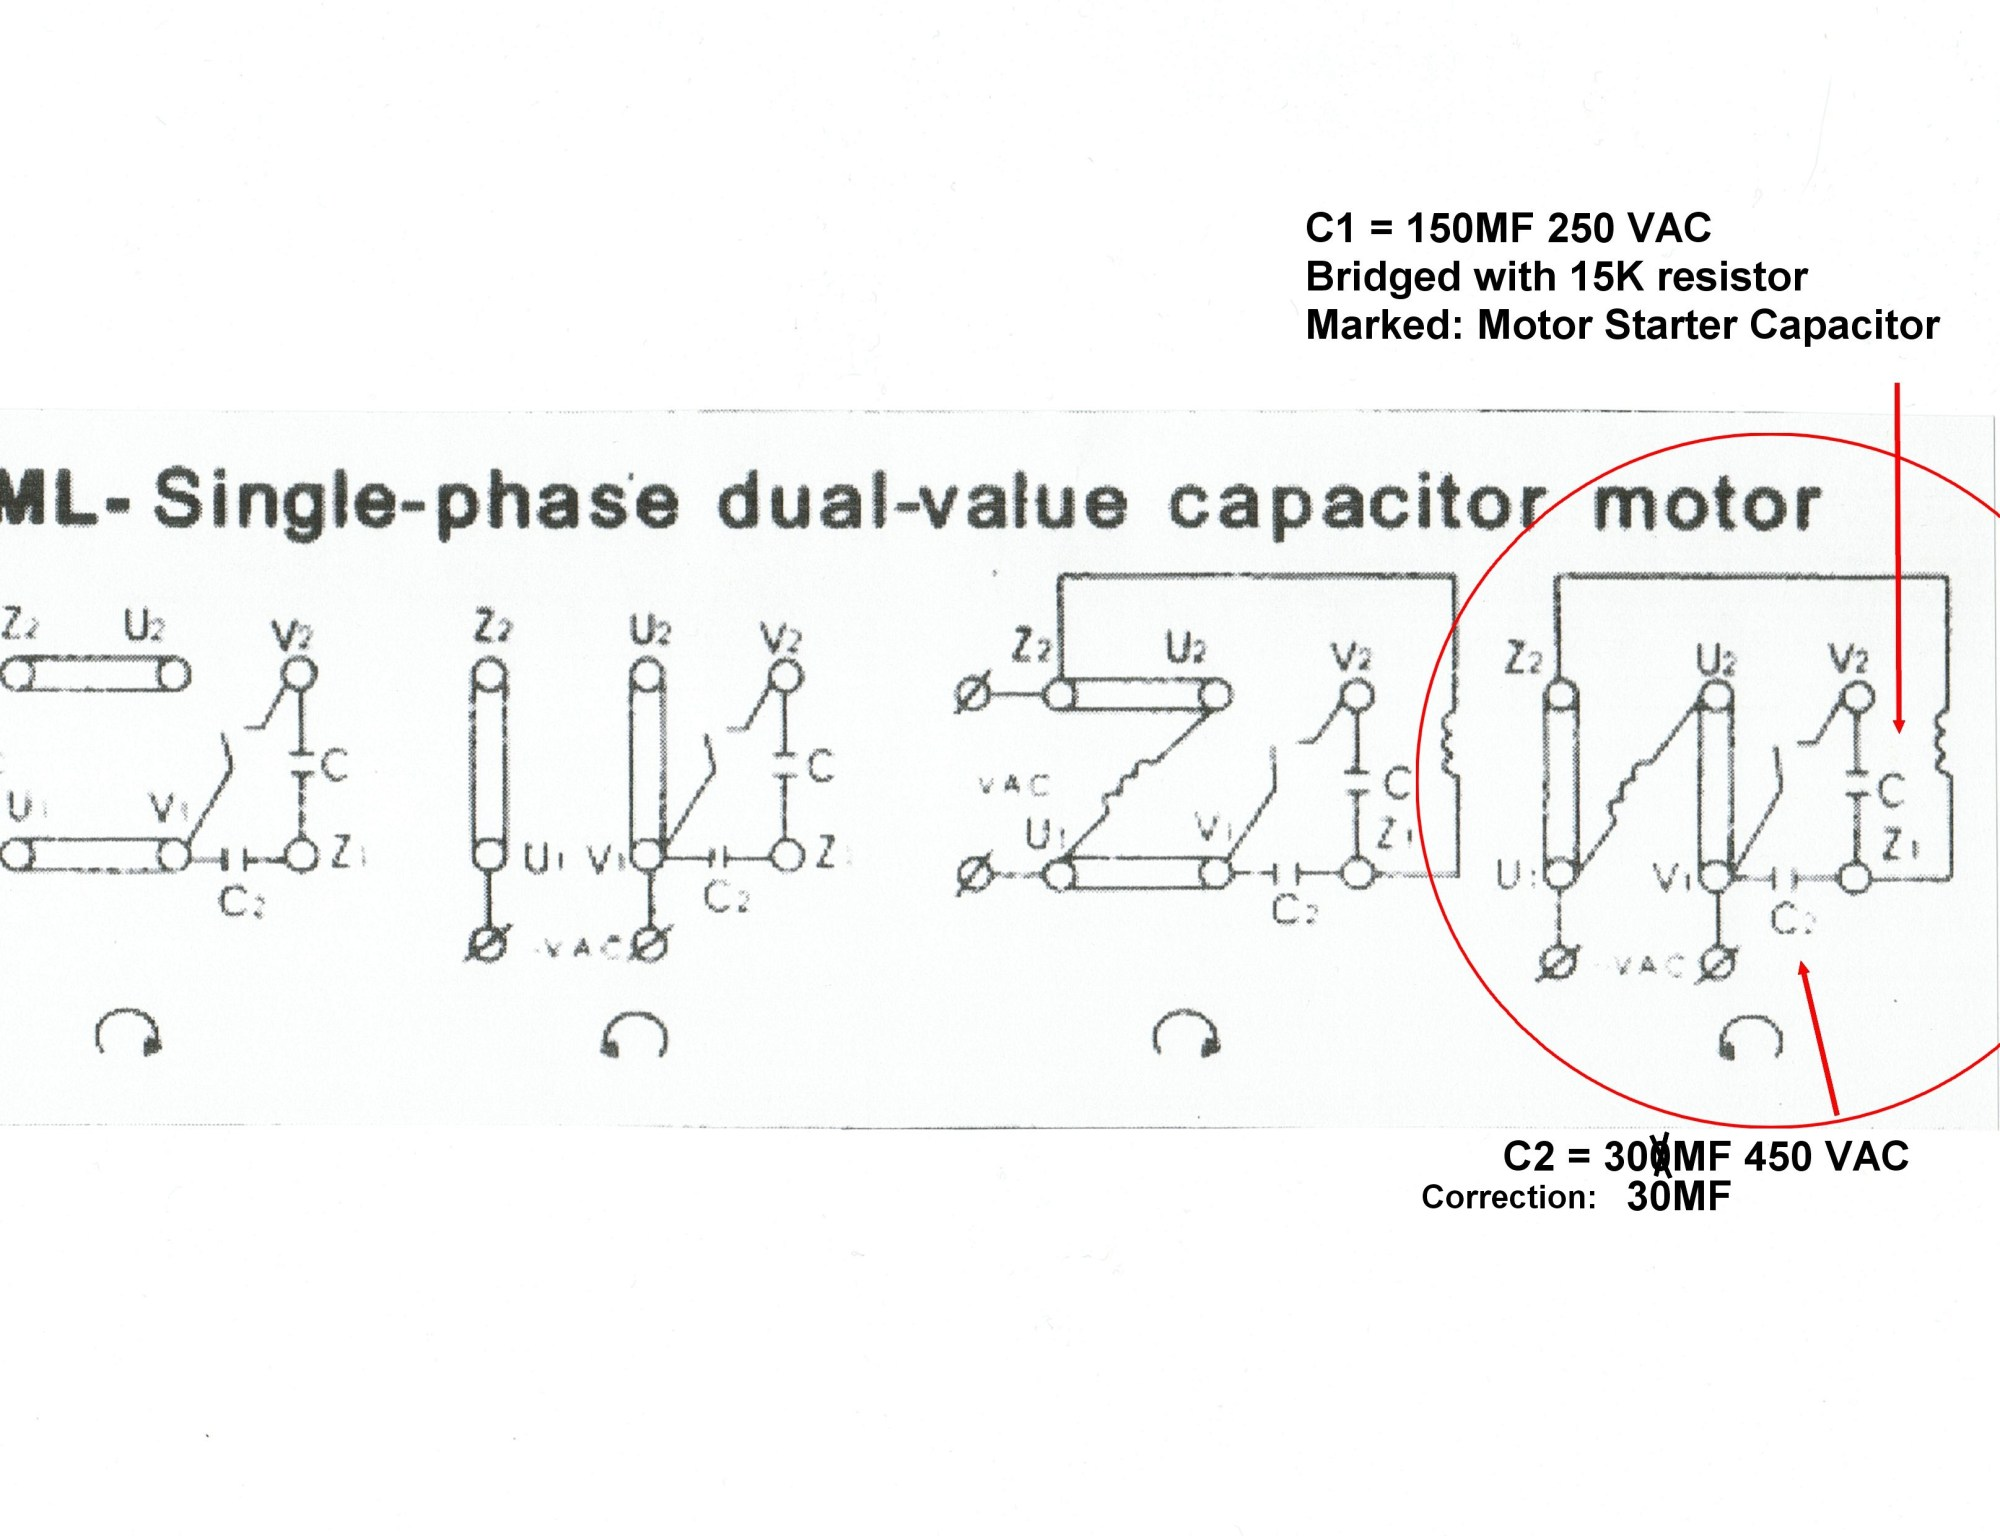 hight resolution of 240v single phase motor wiring diagram wiring diagram schematics 3 phase motor wiring connection 240v induction motor wiring